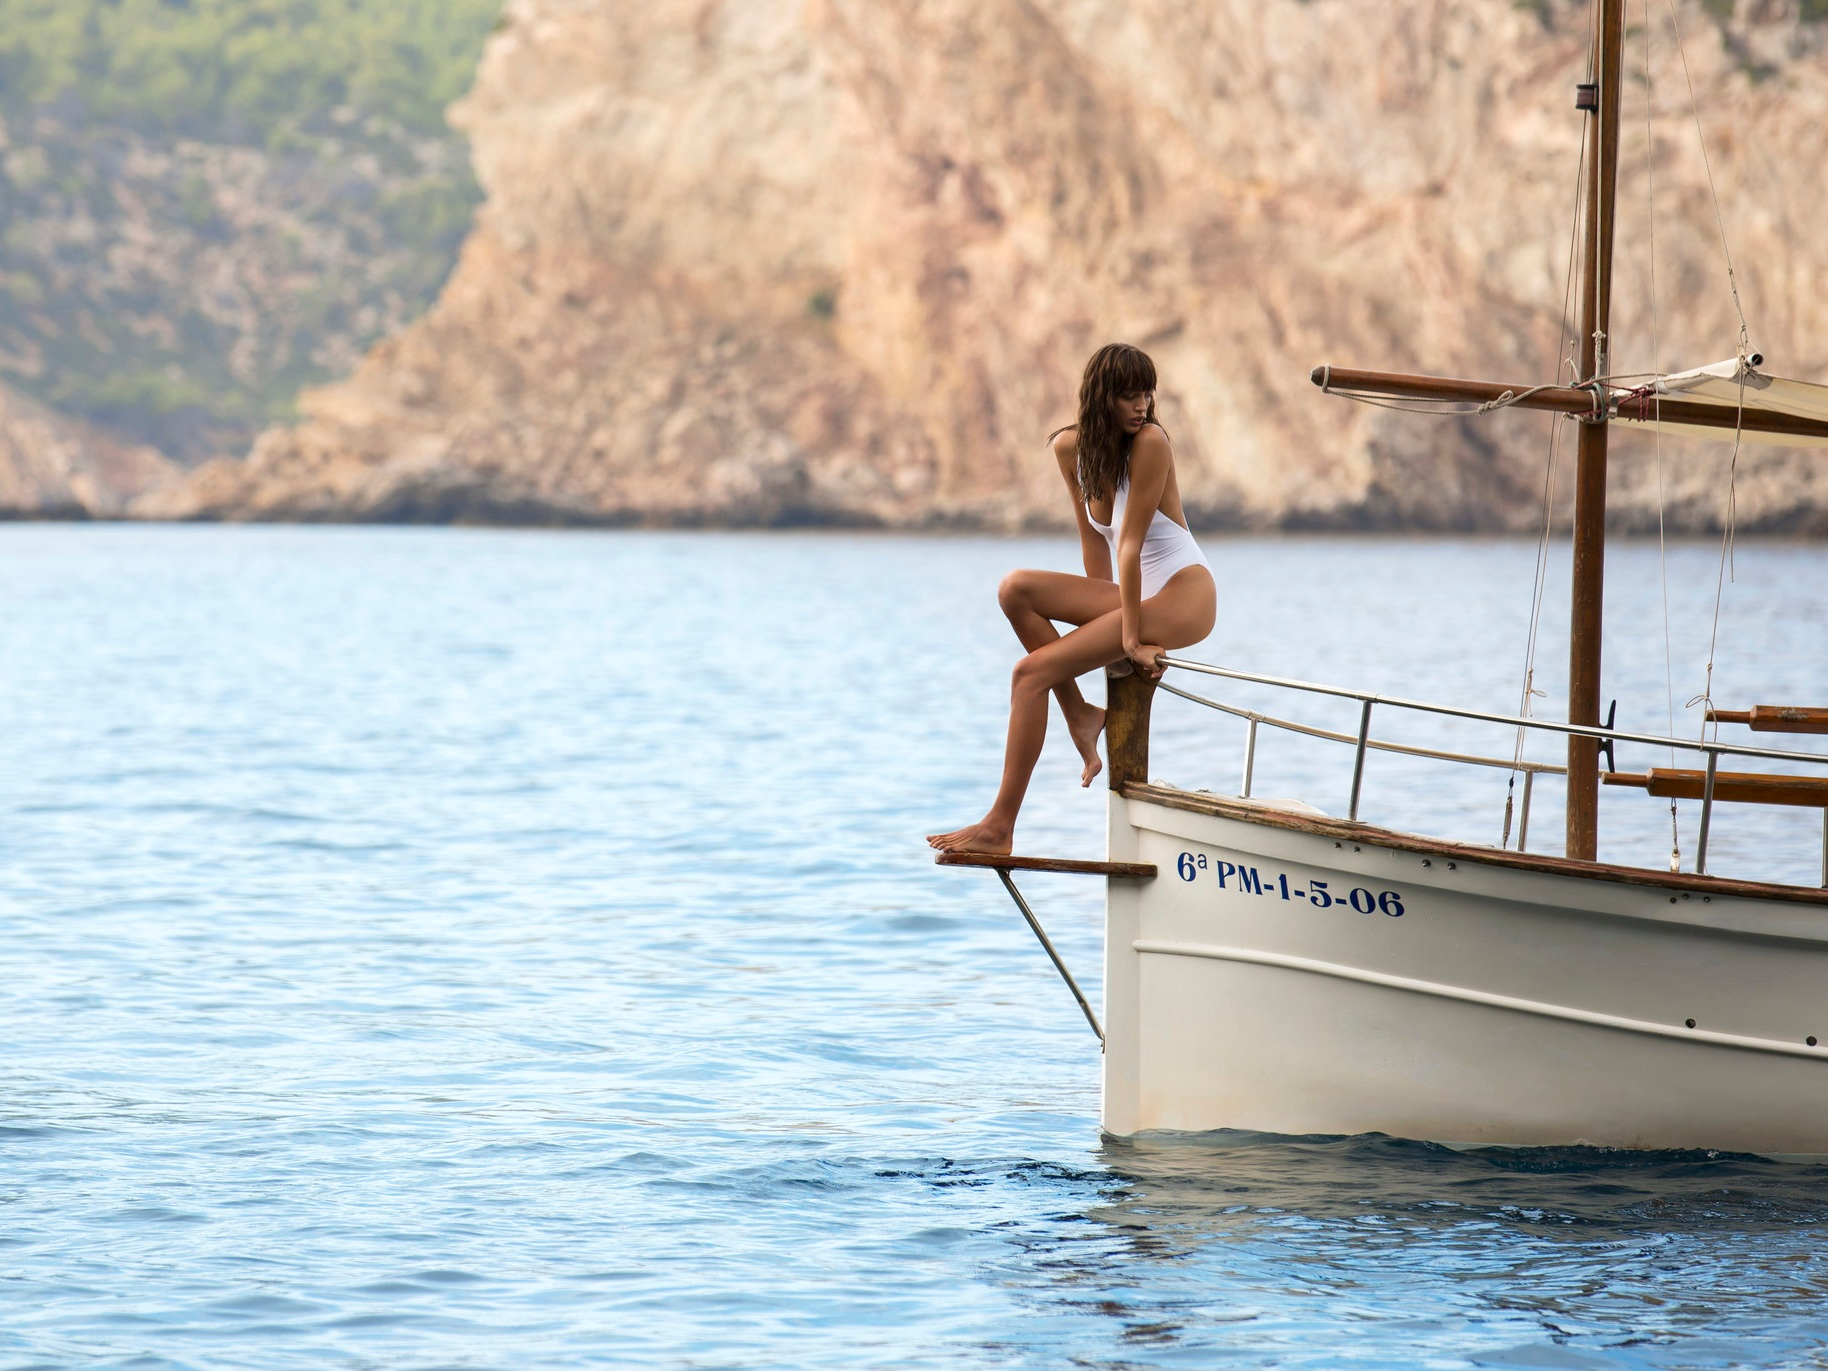 BioRib swim styles - – Sustainability is quickly becoming the norm for swim and resort wear